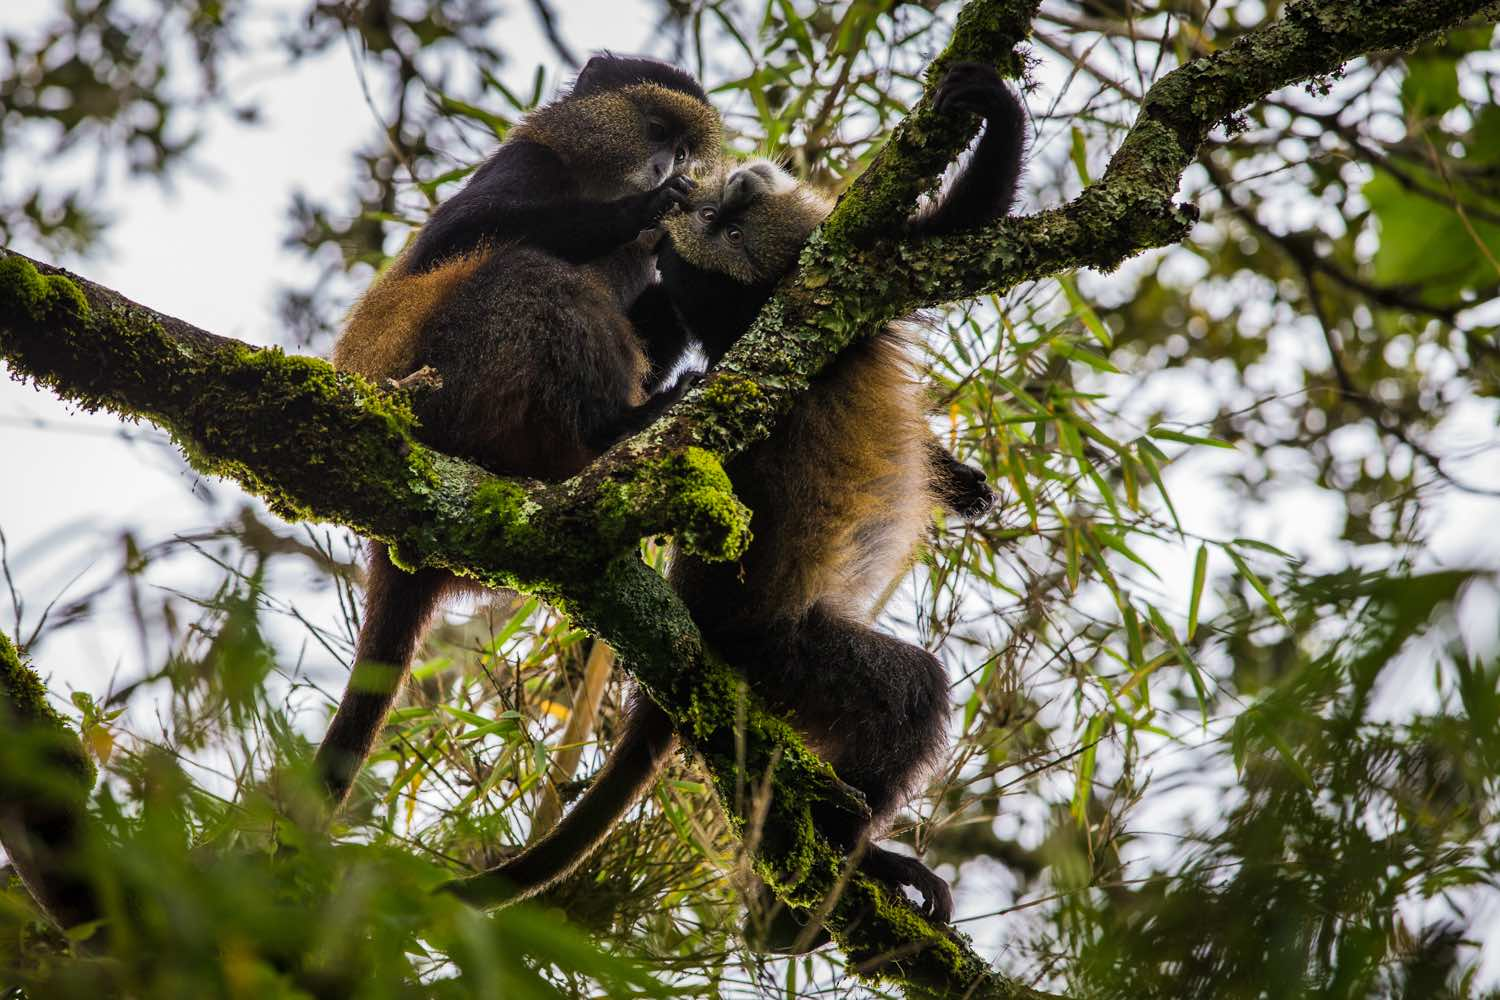 Golden monkeys in Volcanoes National Park; photo by Marcus Westberg